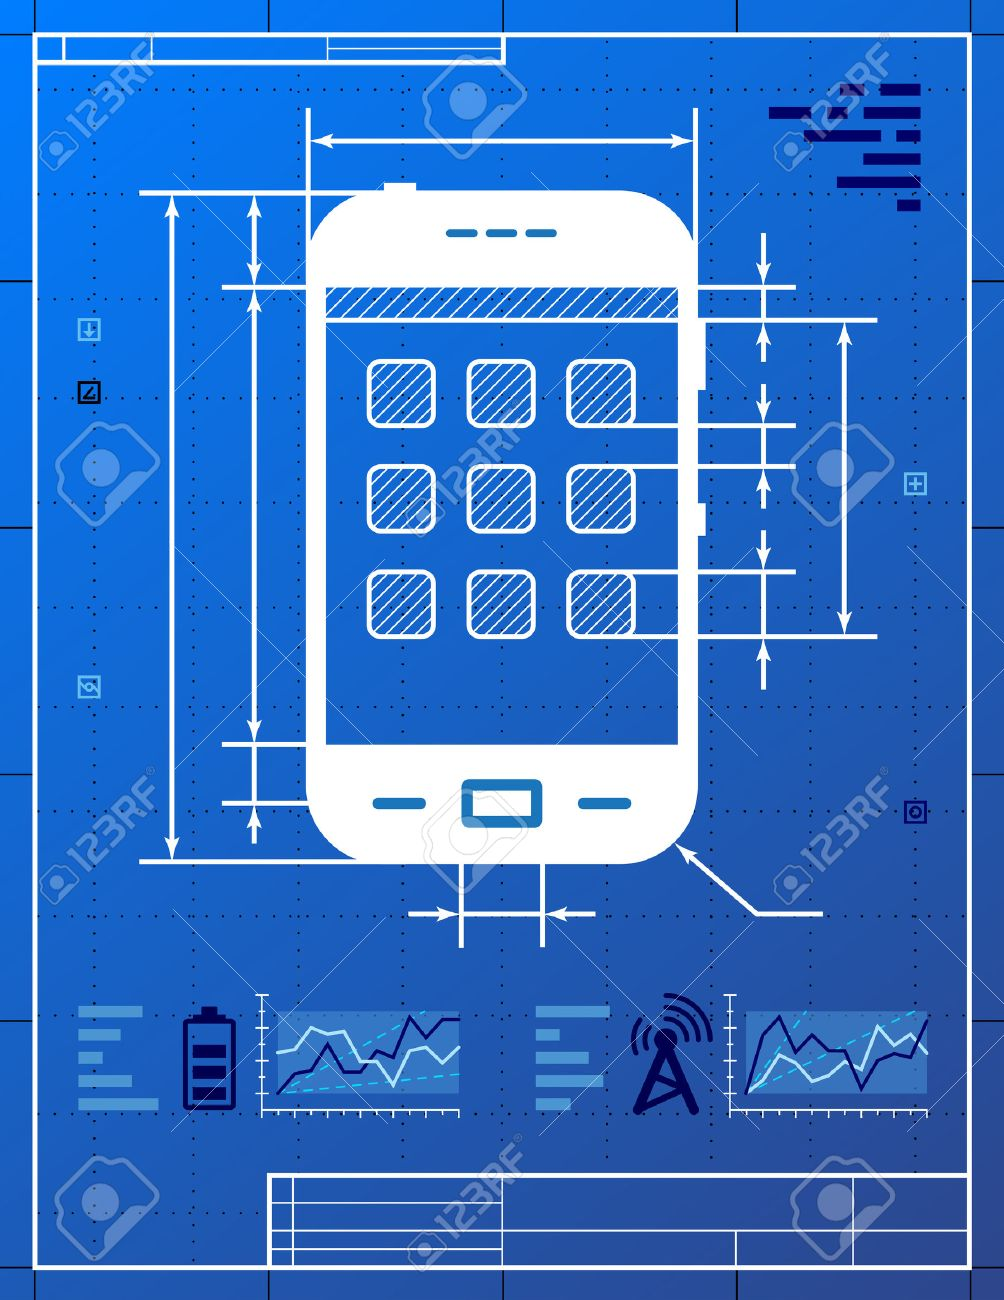 Smartphone like blueprint drawing stylized drafting of smartphone smartphone like blueprint drawing stylized drafting of smartphone on blueprint paper qualitative vector eps 10 malvernweather Image collections